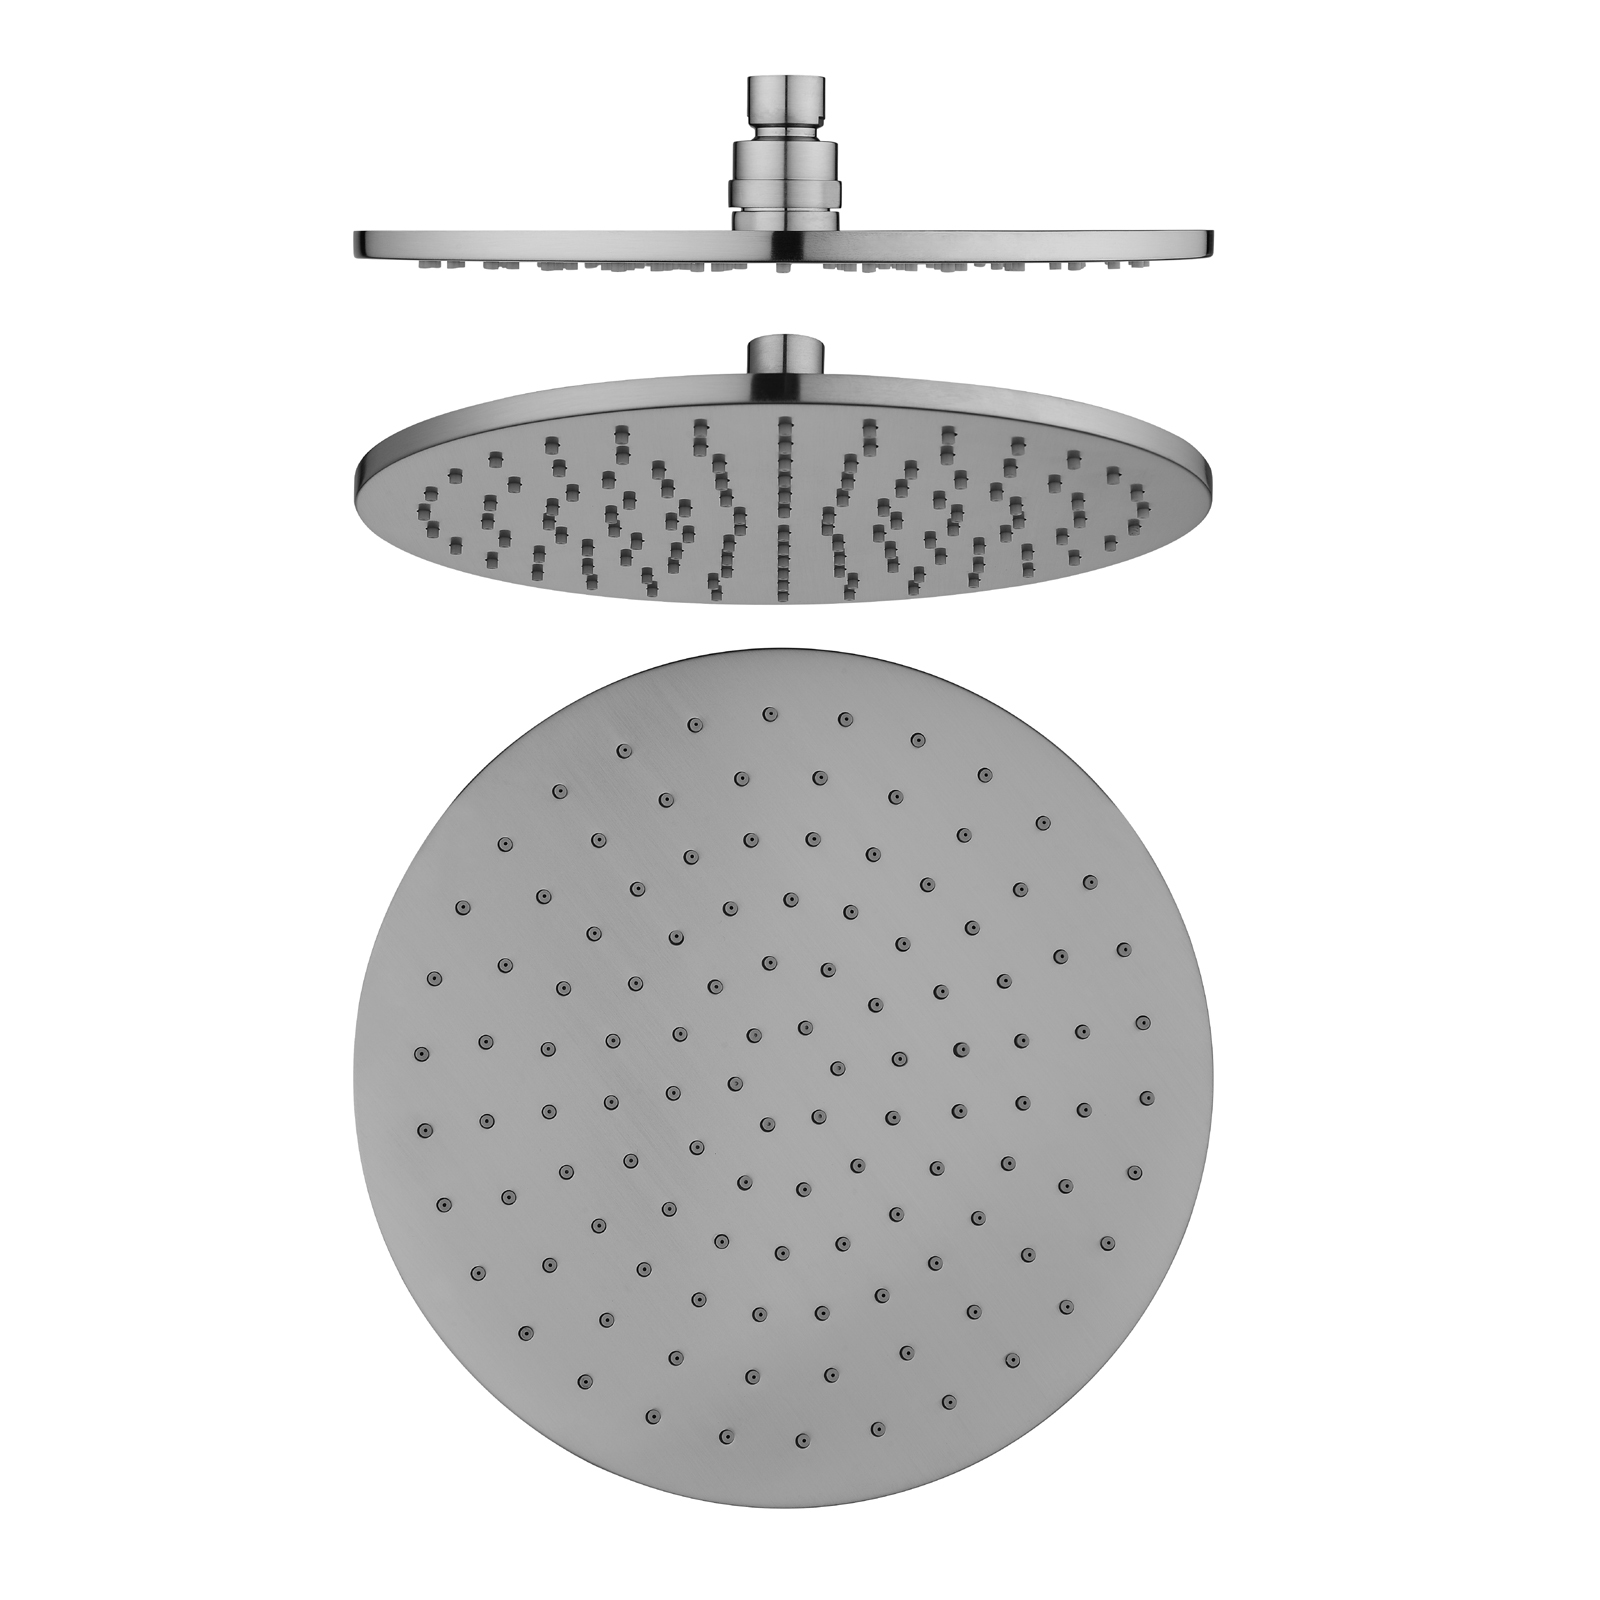 Pentro 250mm Brushed Nickel Solid Brass Round Rainfall Shower Head